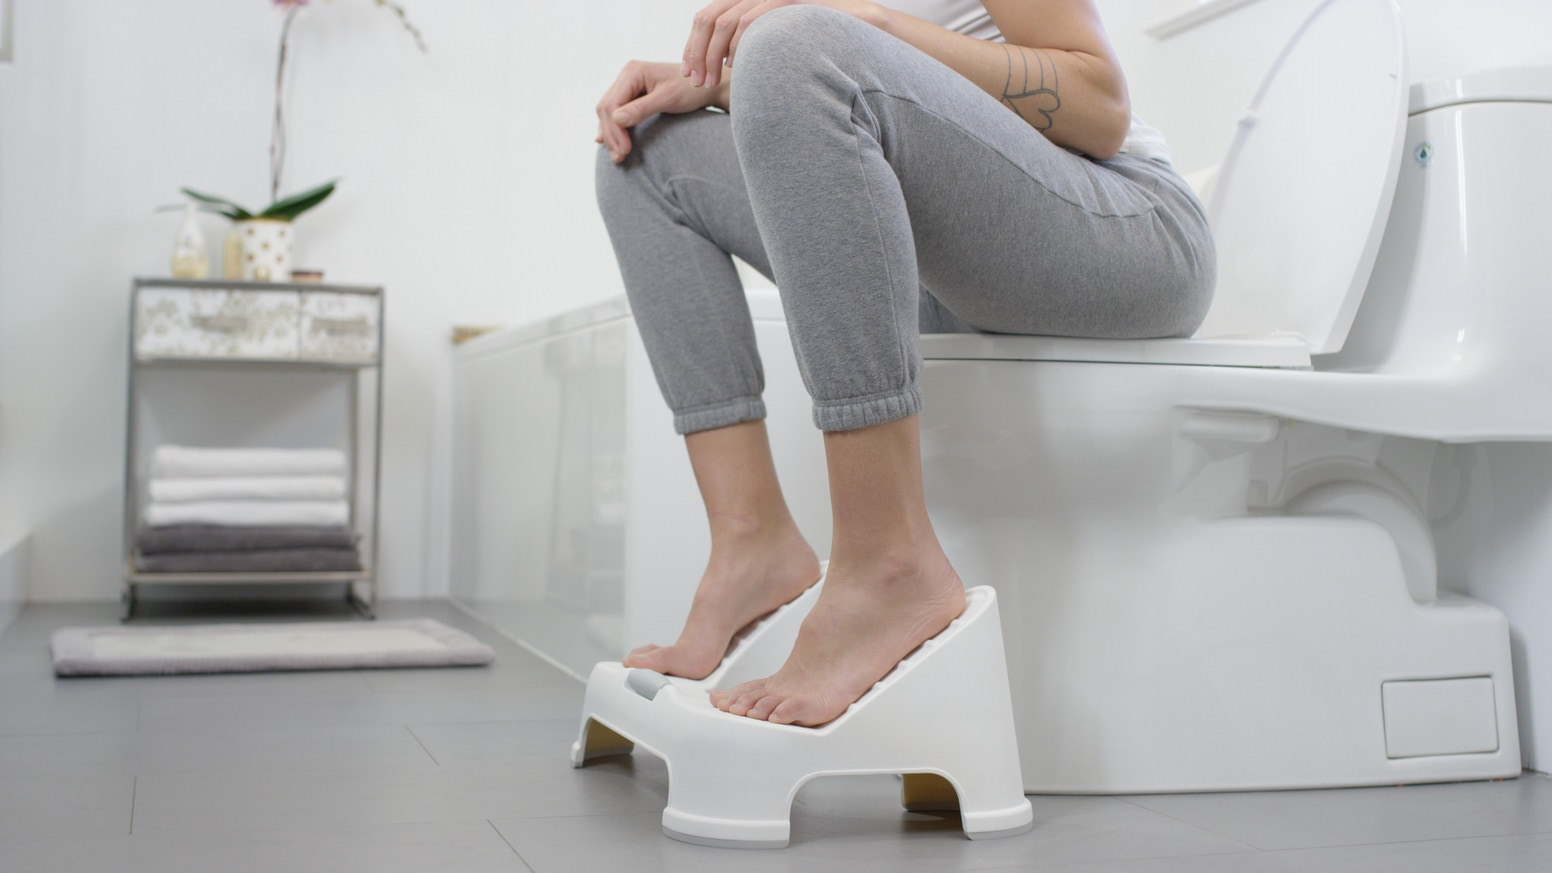 A toilet footstool for squatting and massage, leading to better health. Best value for LASTING WELLNESS!